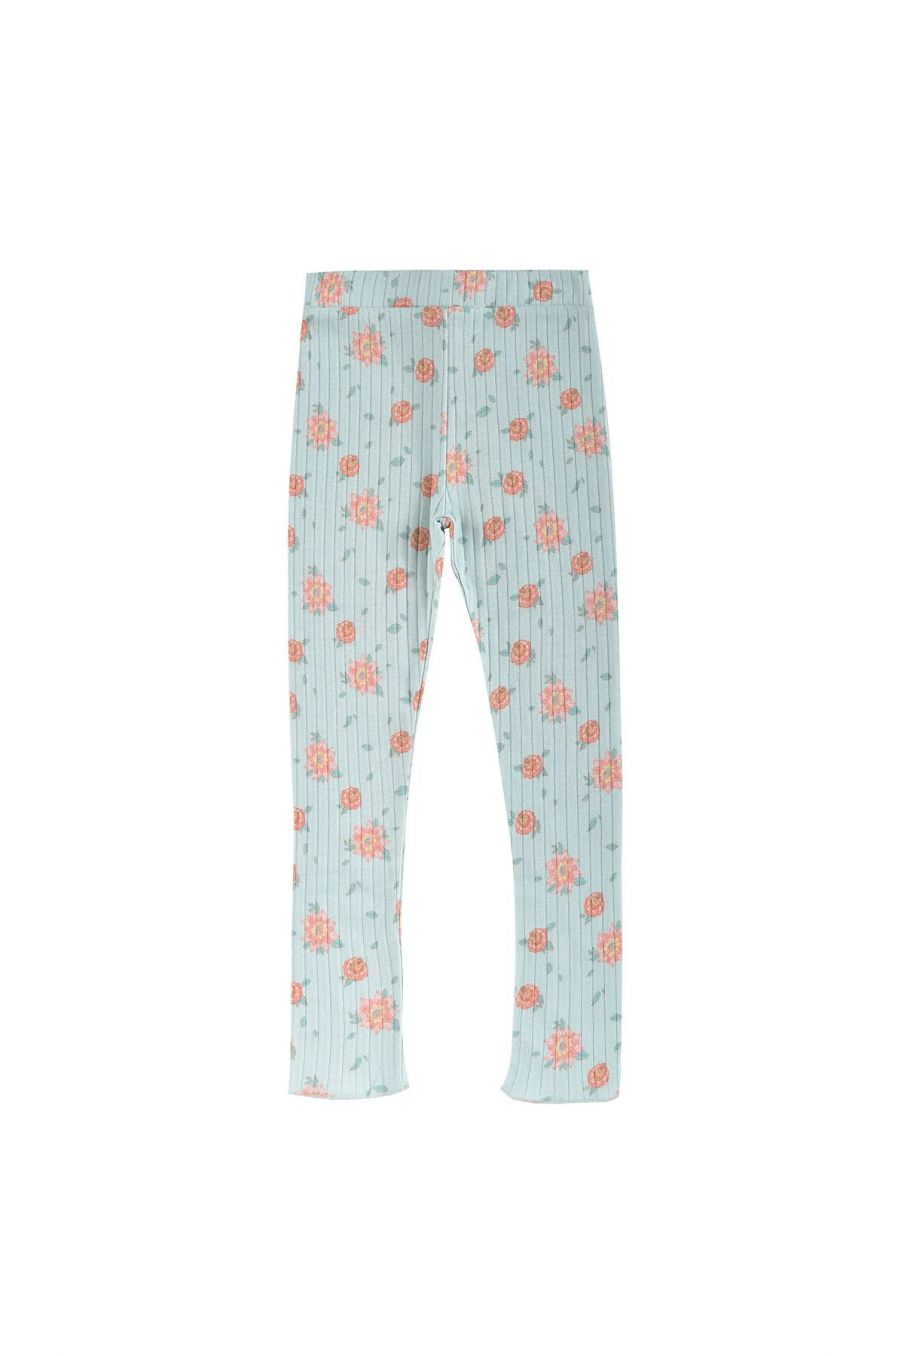 boheme chic vintage leggings fille anandou vintage blue flowers